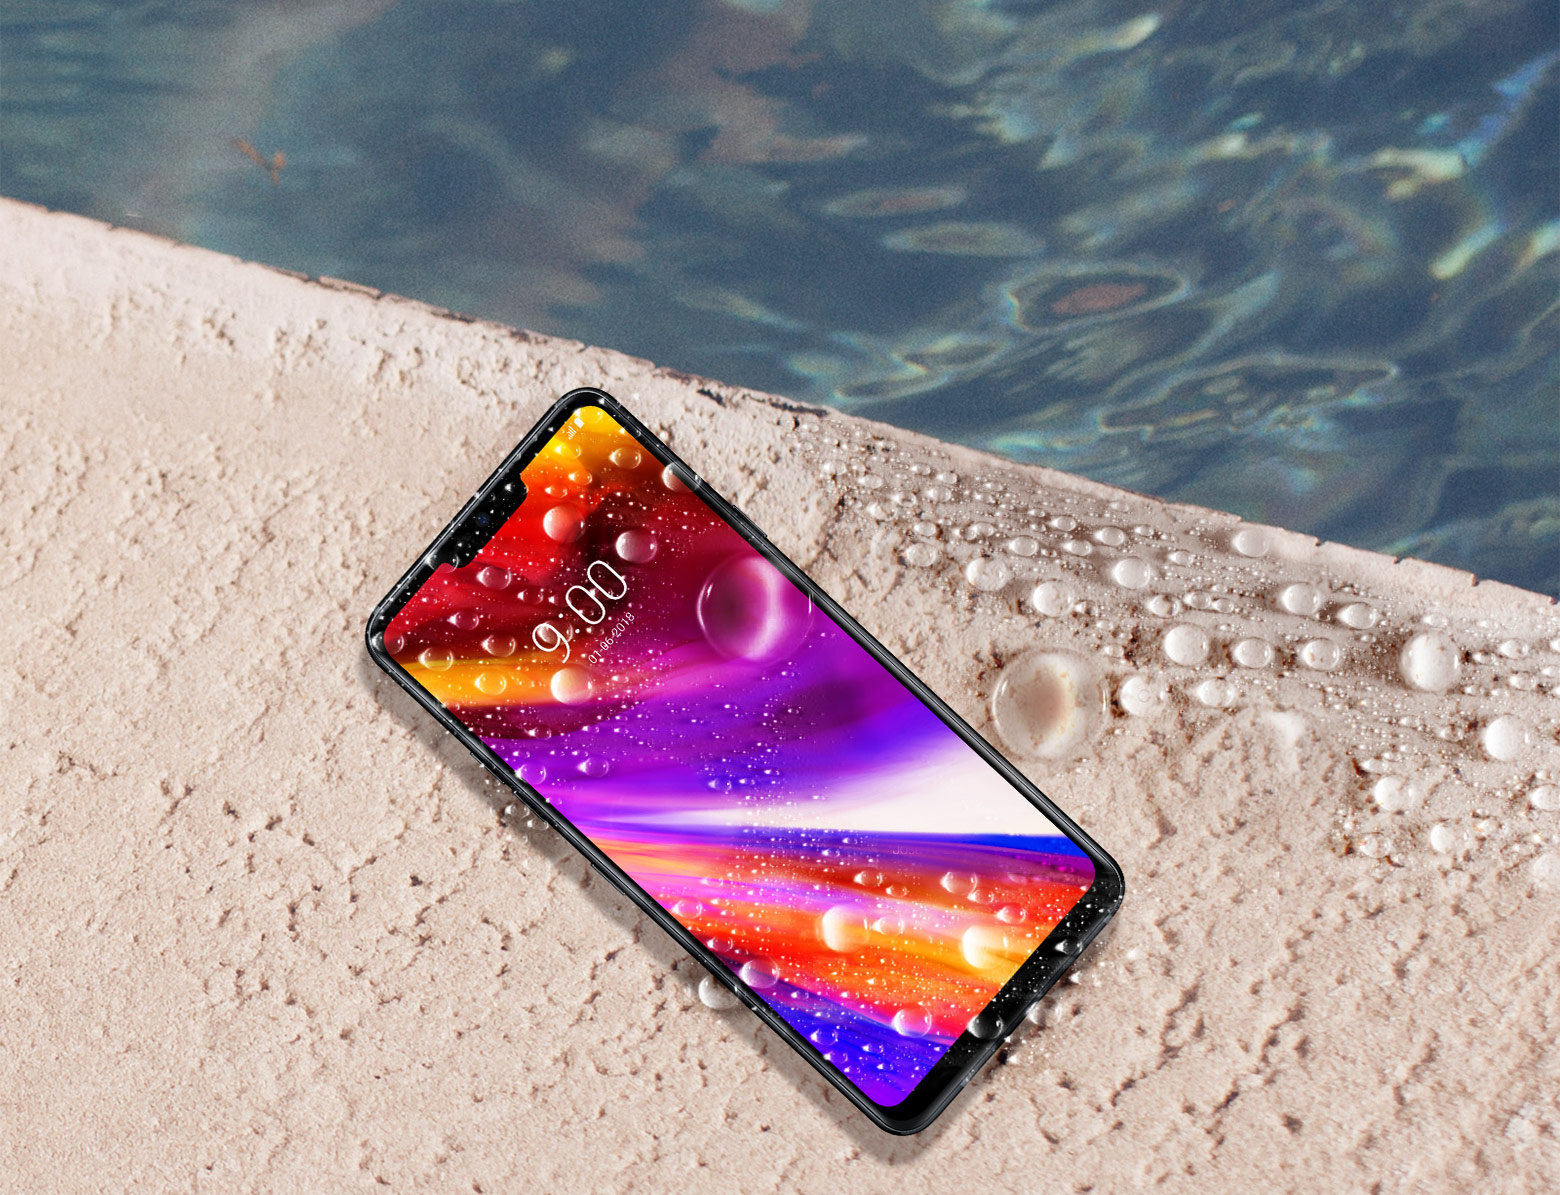 An LG G7 ThinQ lies by the side of a pool covered in water droplets to showcase its water resistance.